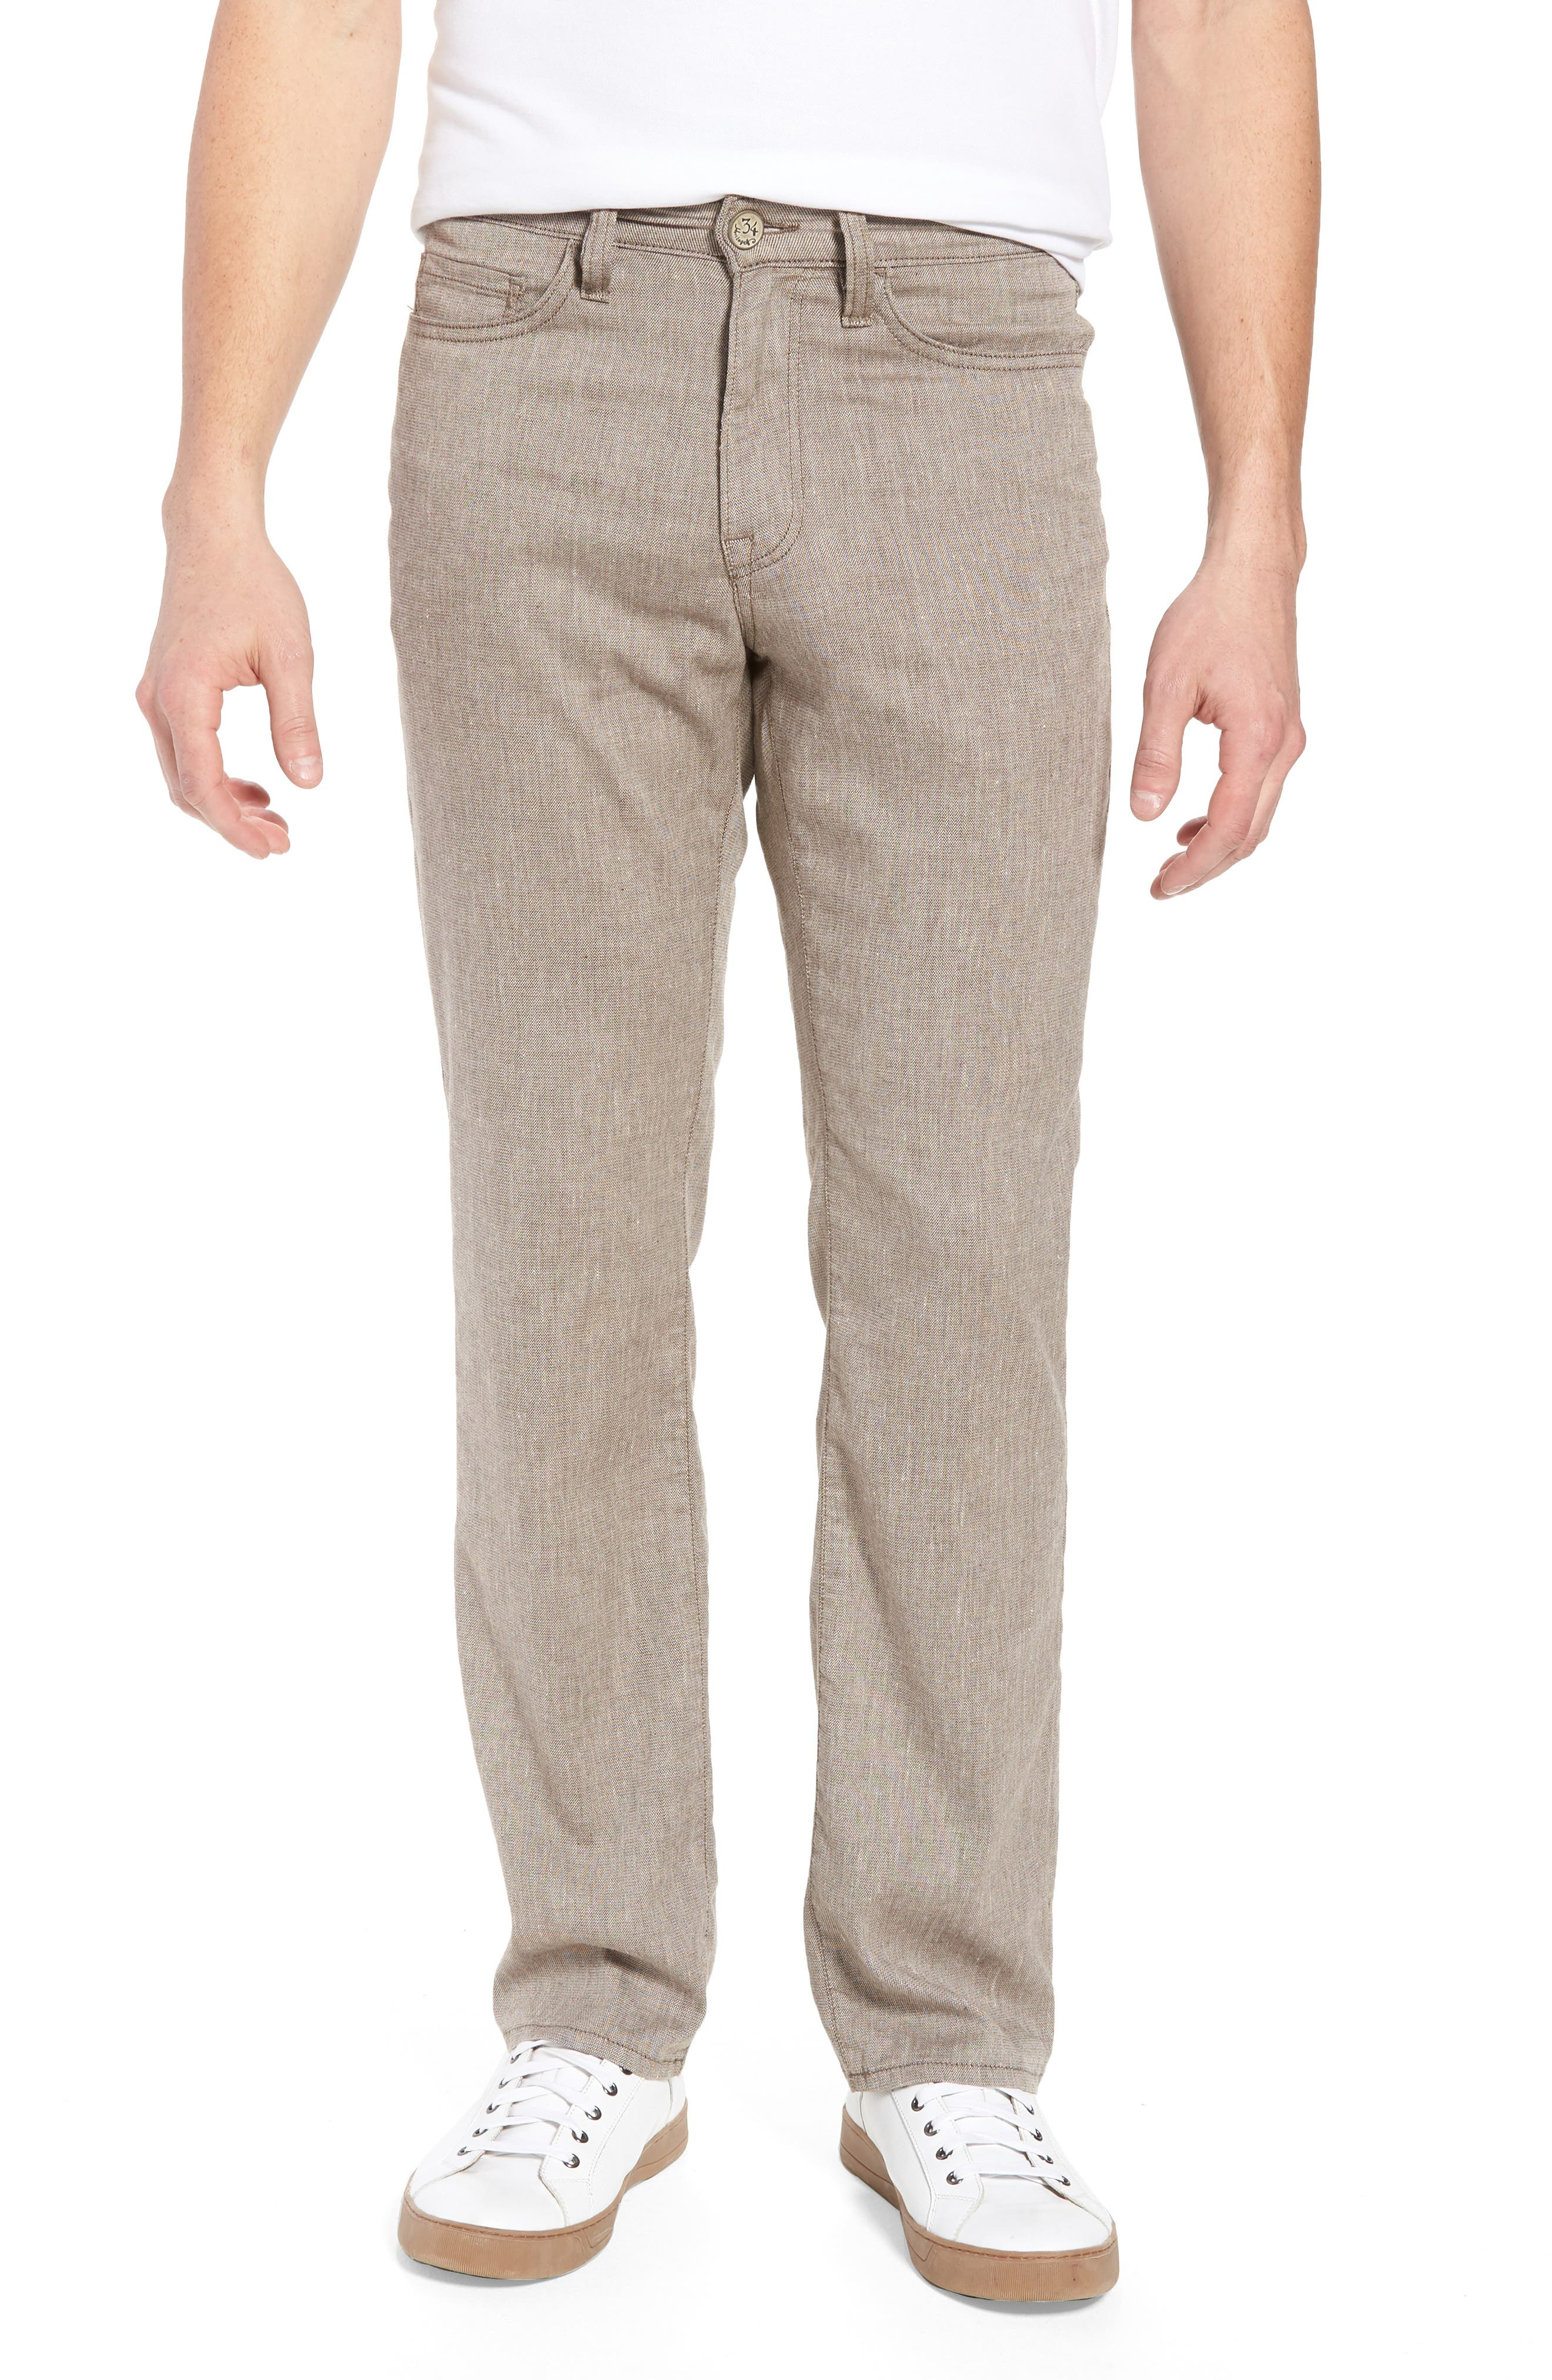 Charisma Relaxed Fit Pants,                             Main thumbnail 1, color,                             Latte Textured